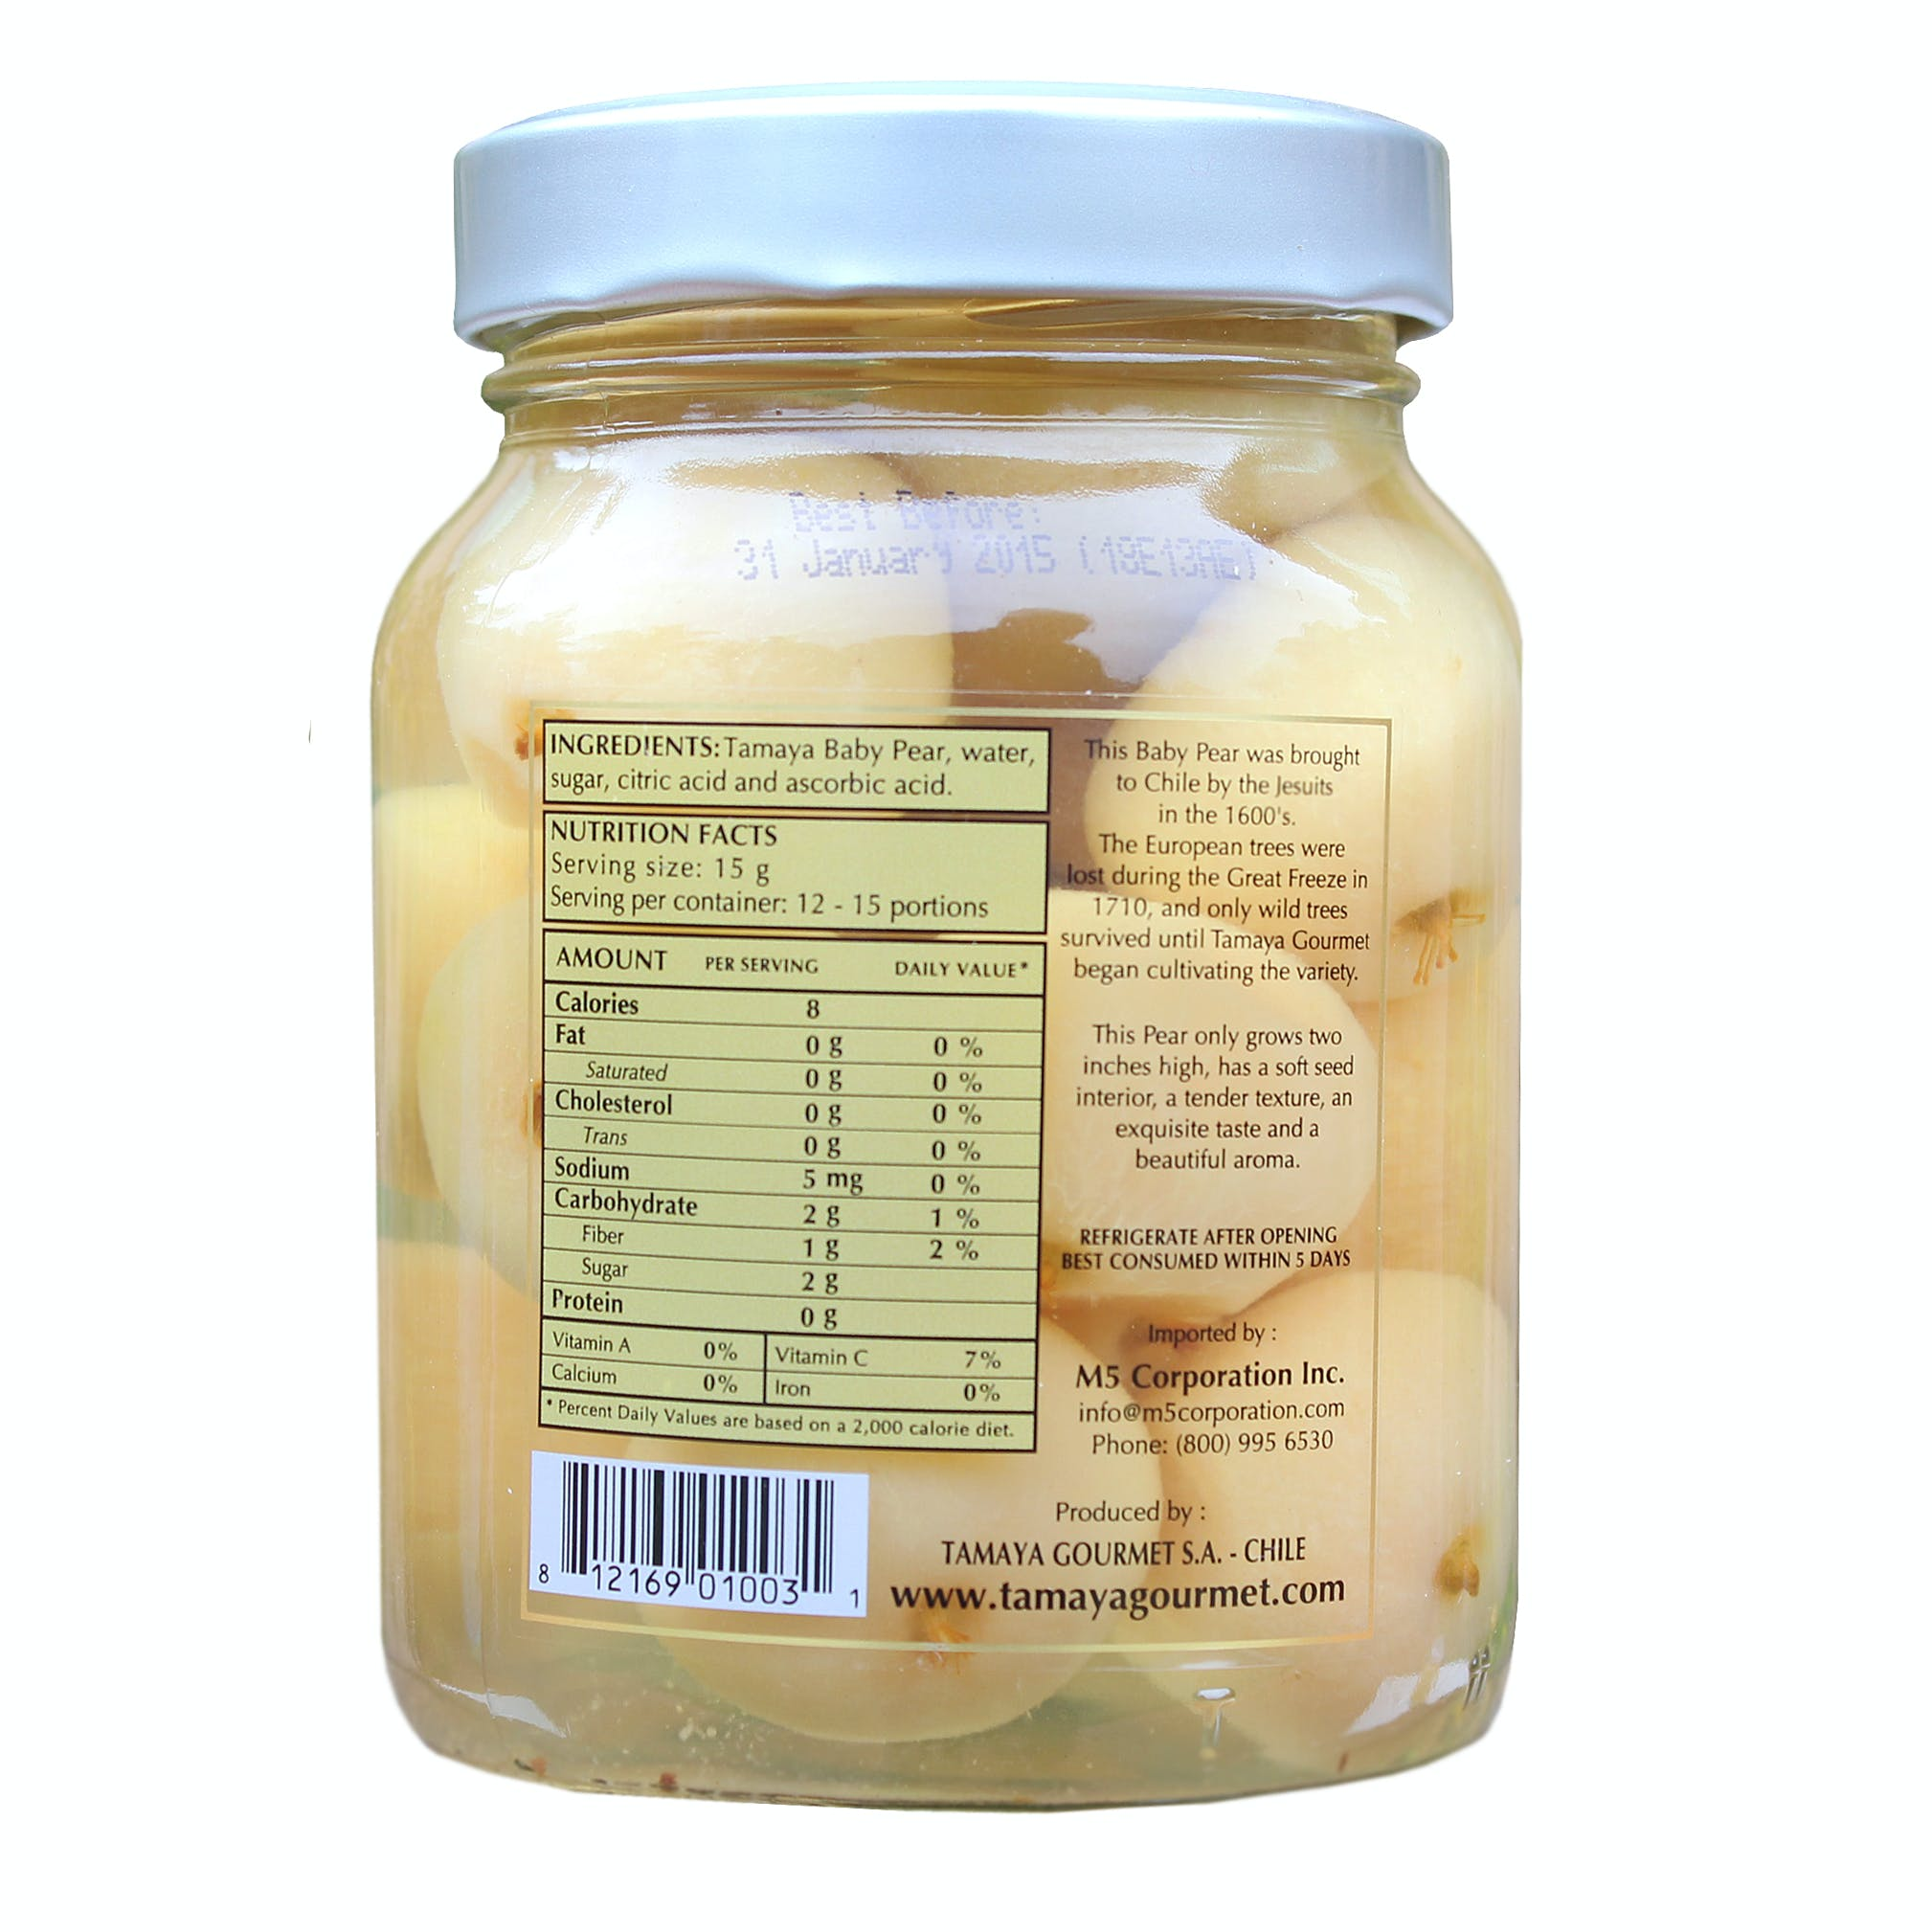 Chilean Wild Baby Pears From Tamaya, 16 Ounces - sold by M5 Corporation